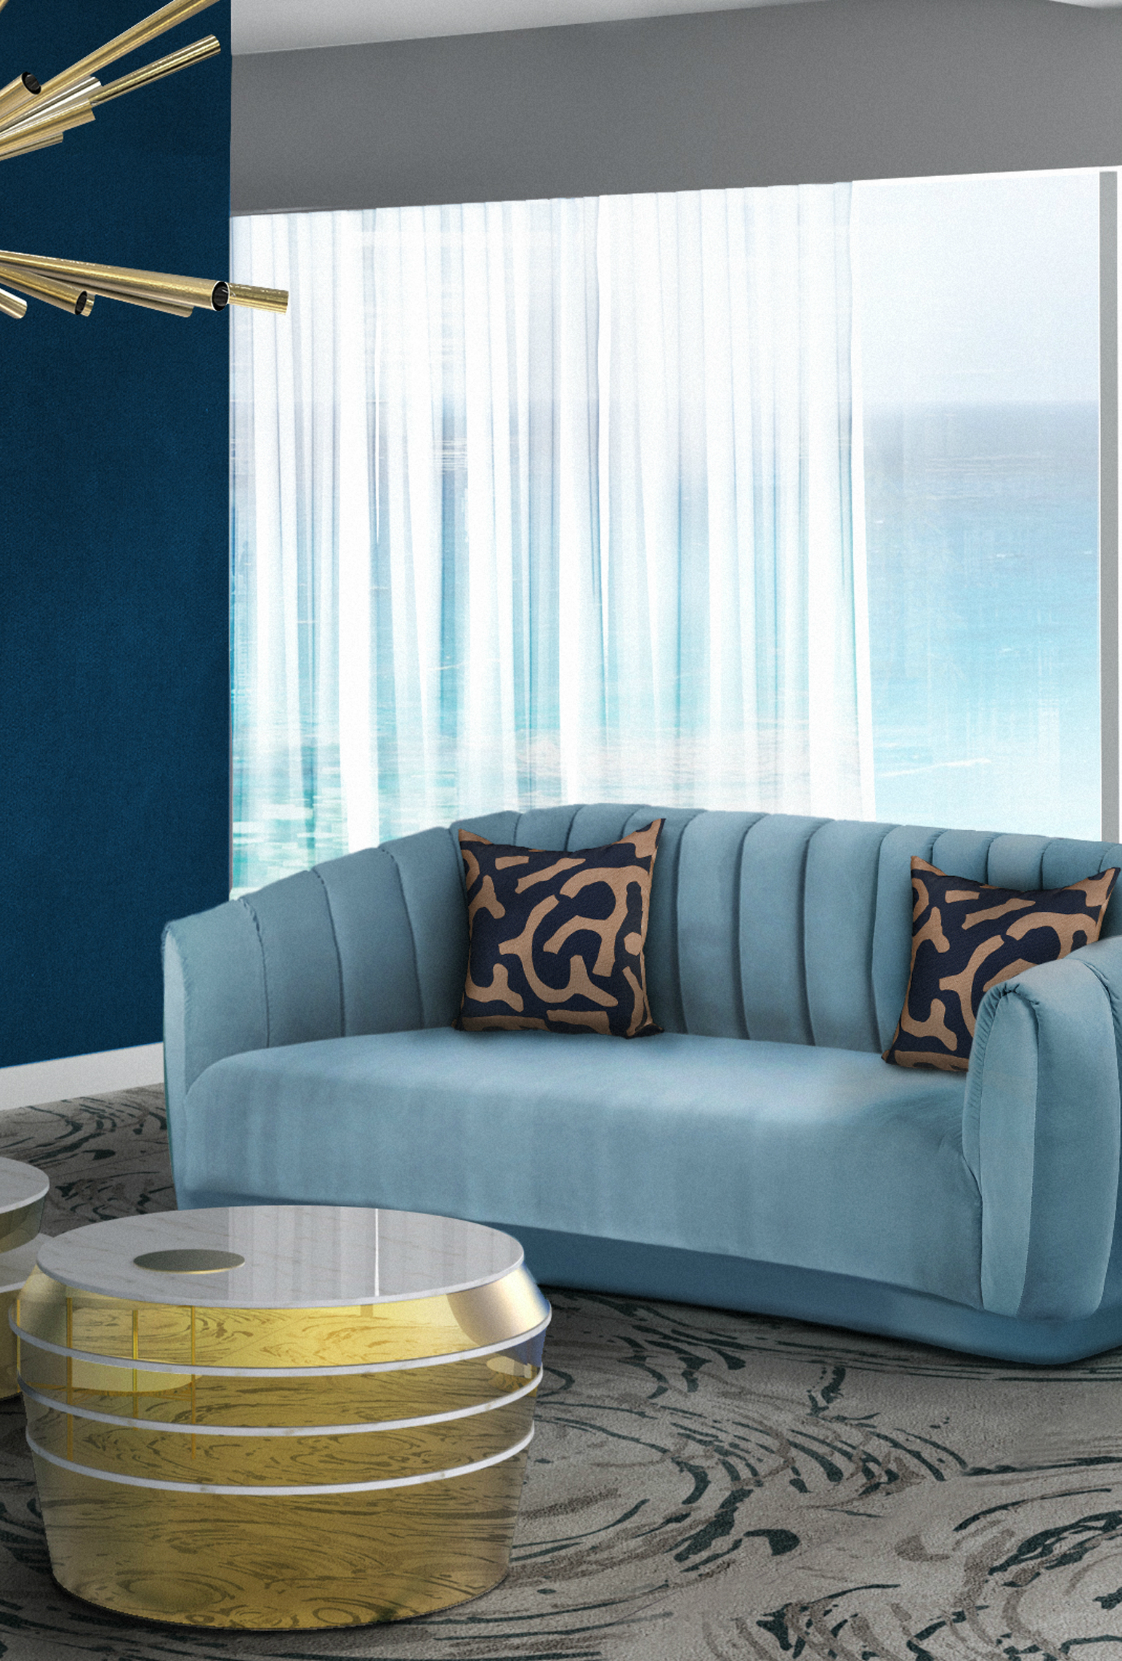 How to Decorate with Blue According to Top Interior Designers